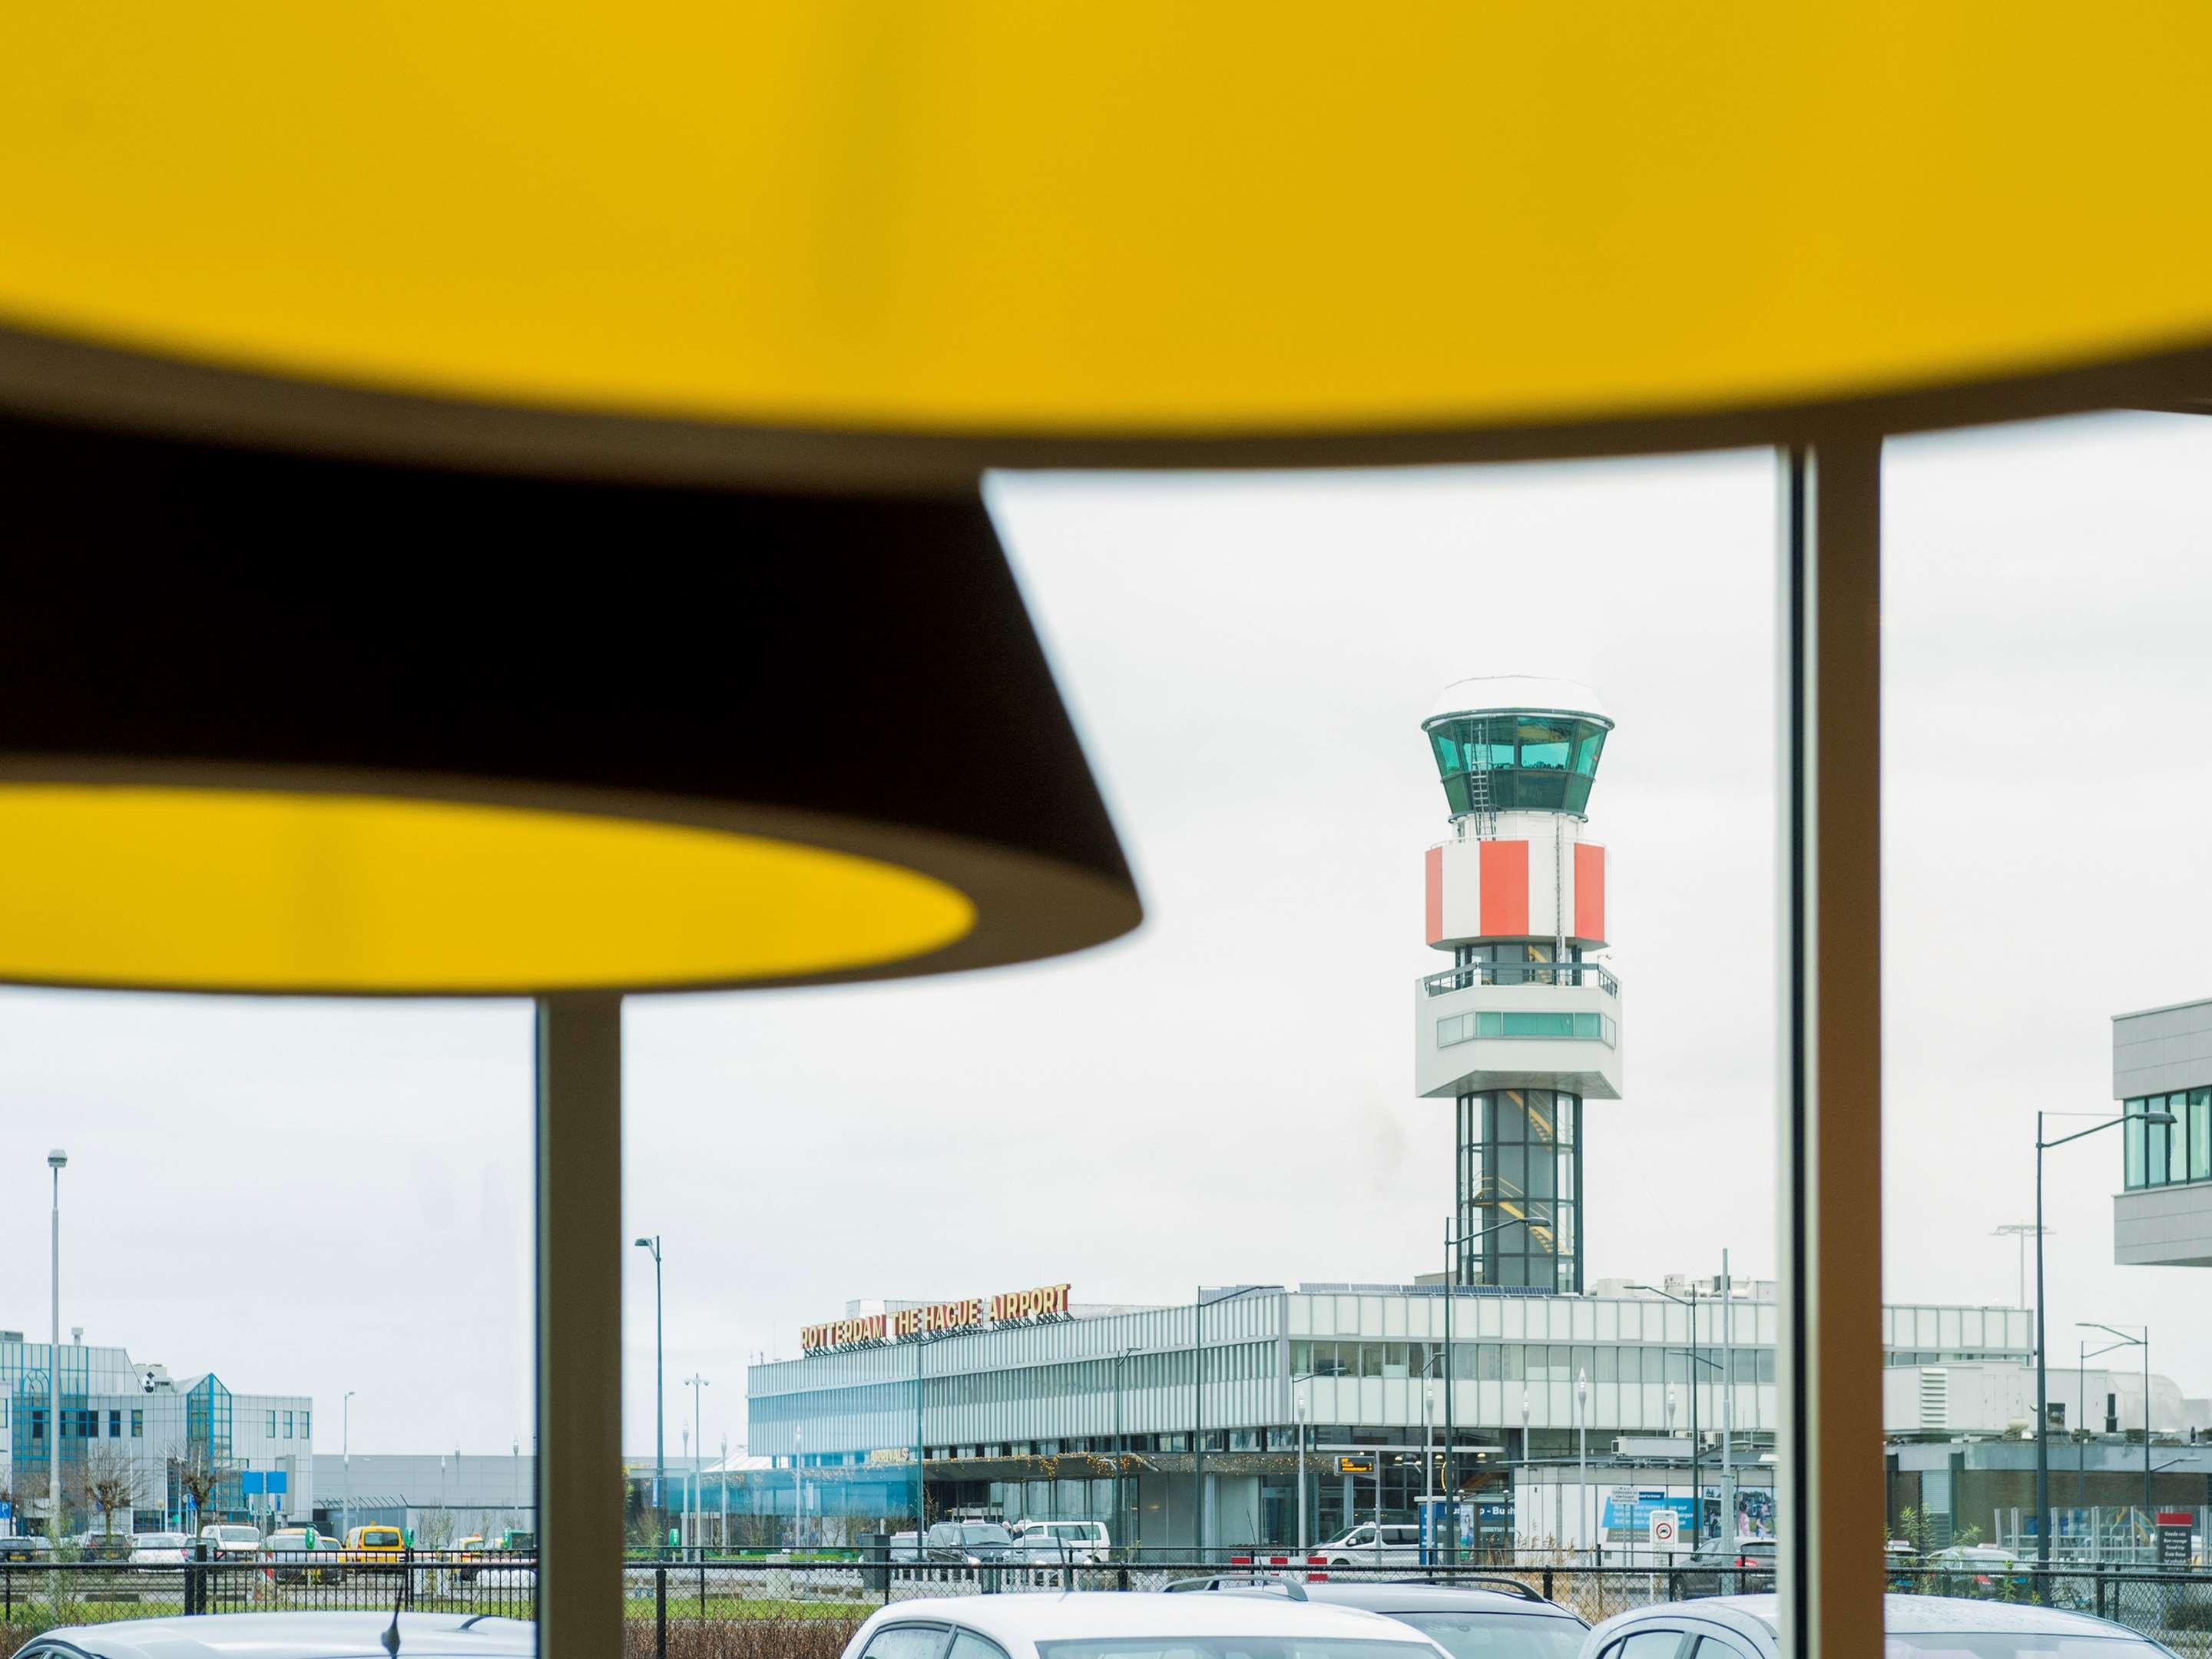 ibis budget Rotterdam The Hague Airport